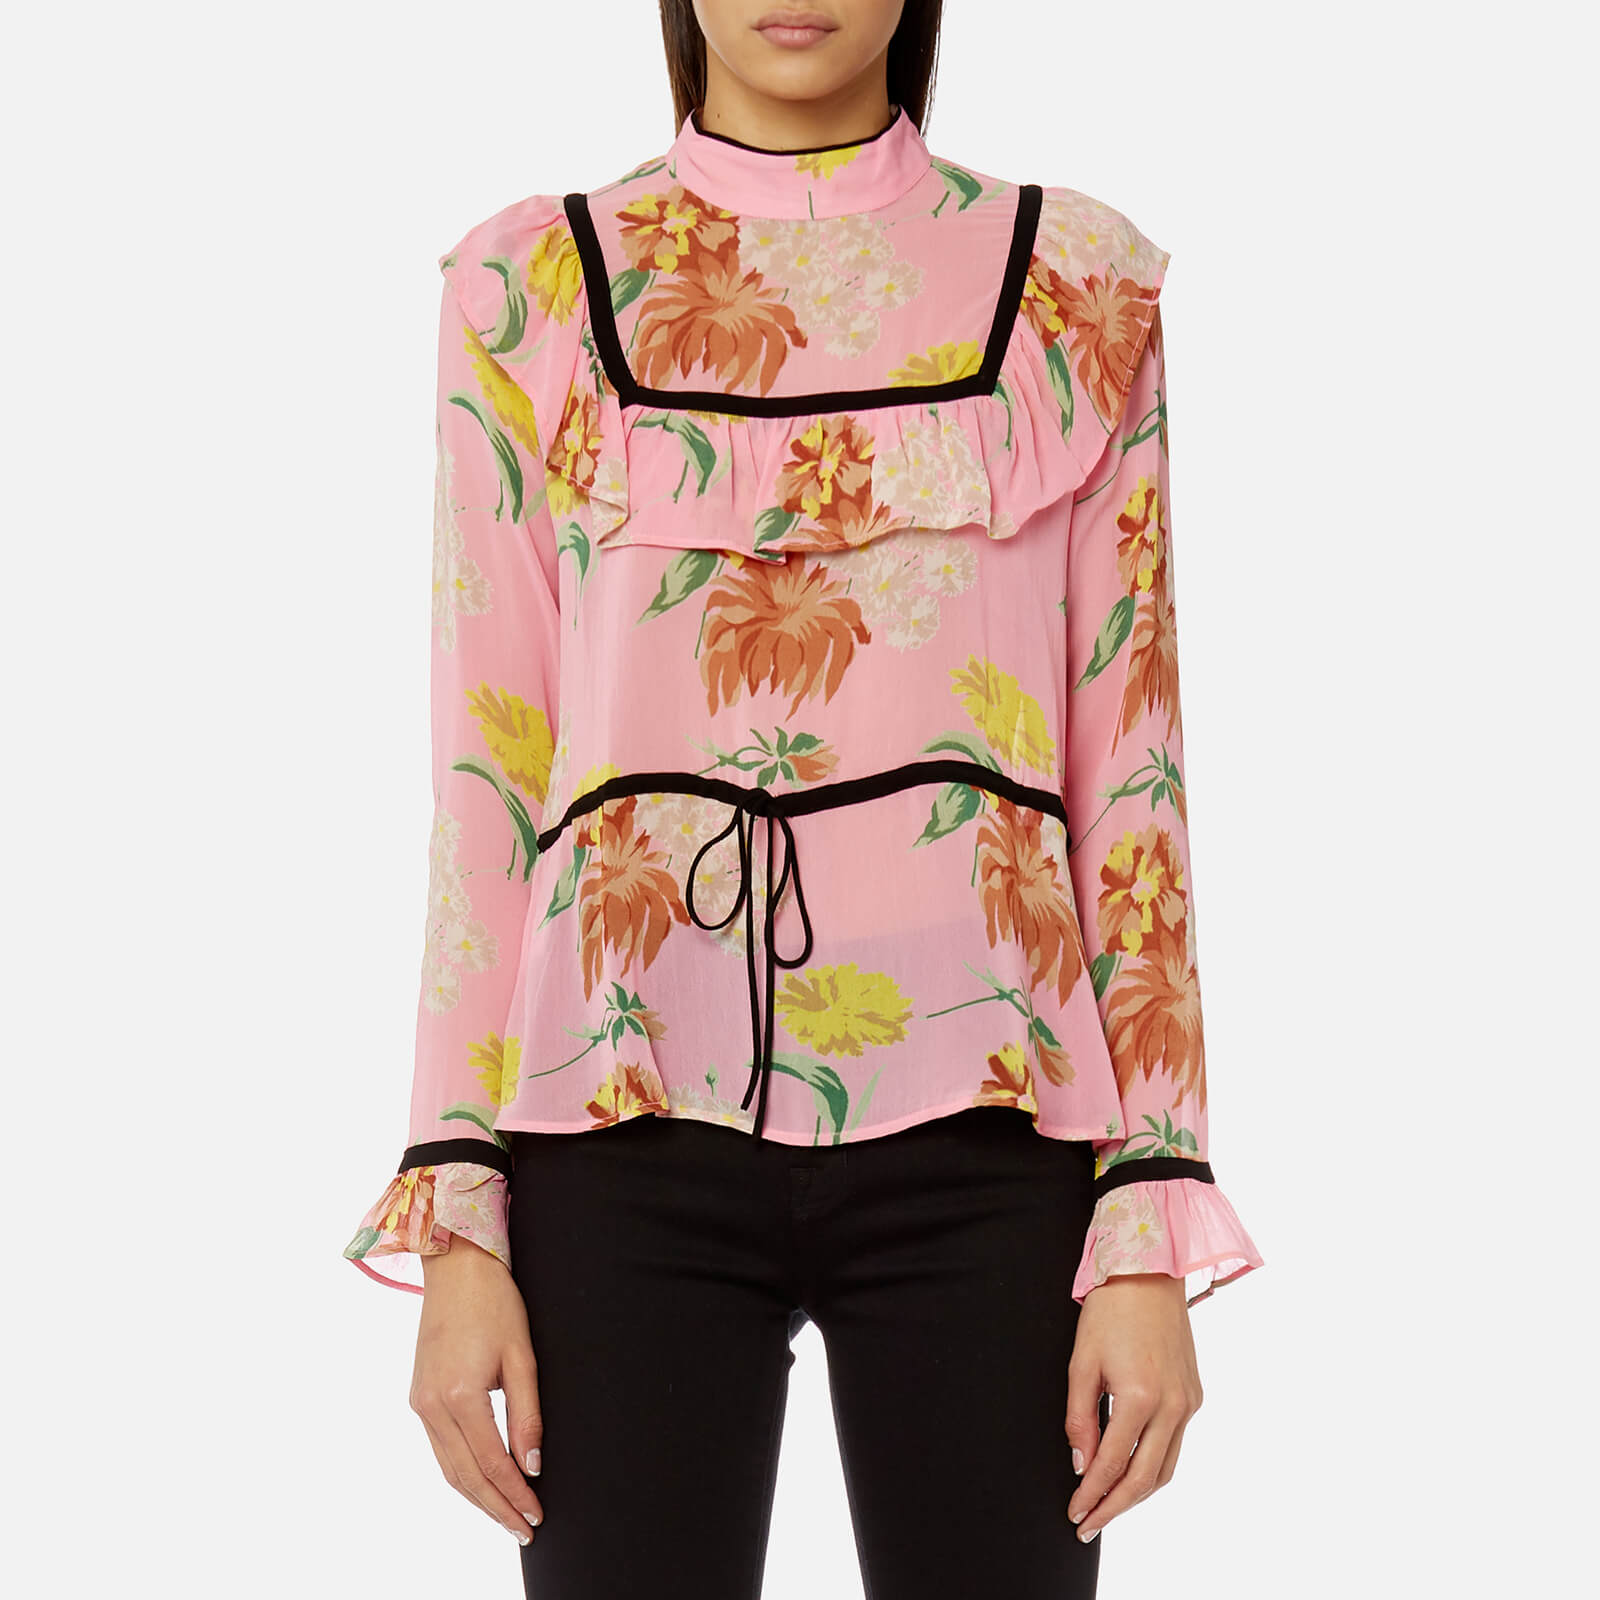 5a0fc932ebf1 Ganni Women's Marceau Georgette Shirt - Sea Pink - Free UK Delivery over £50